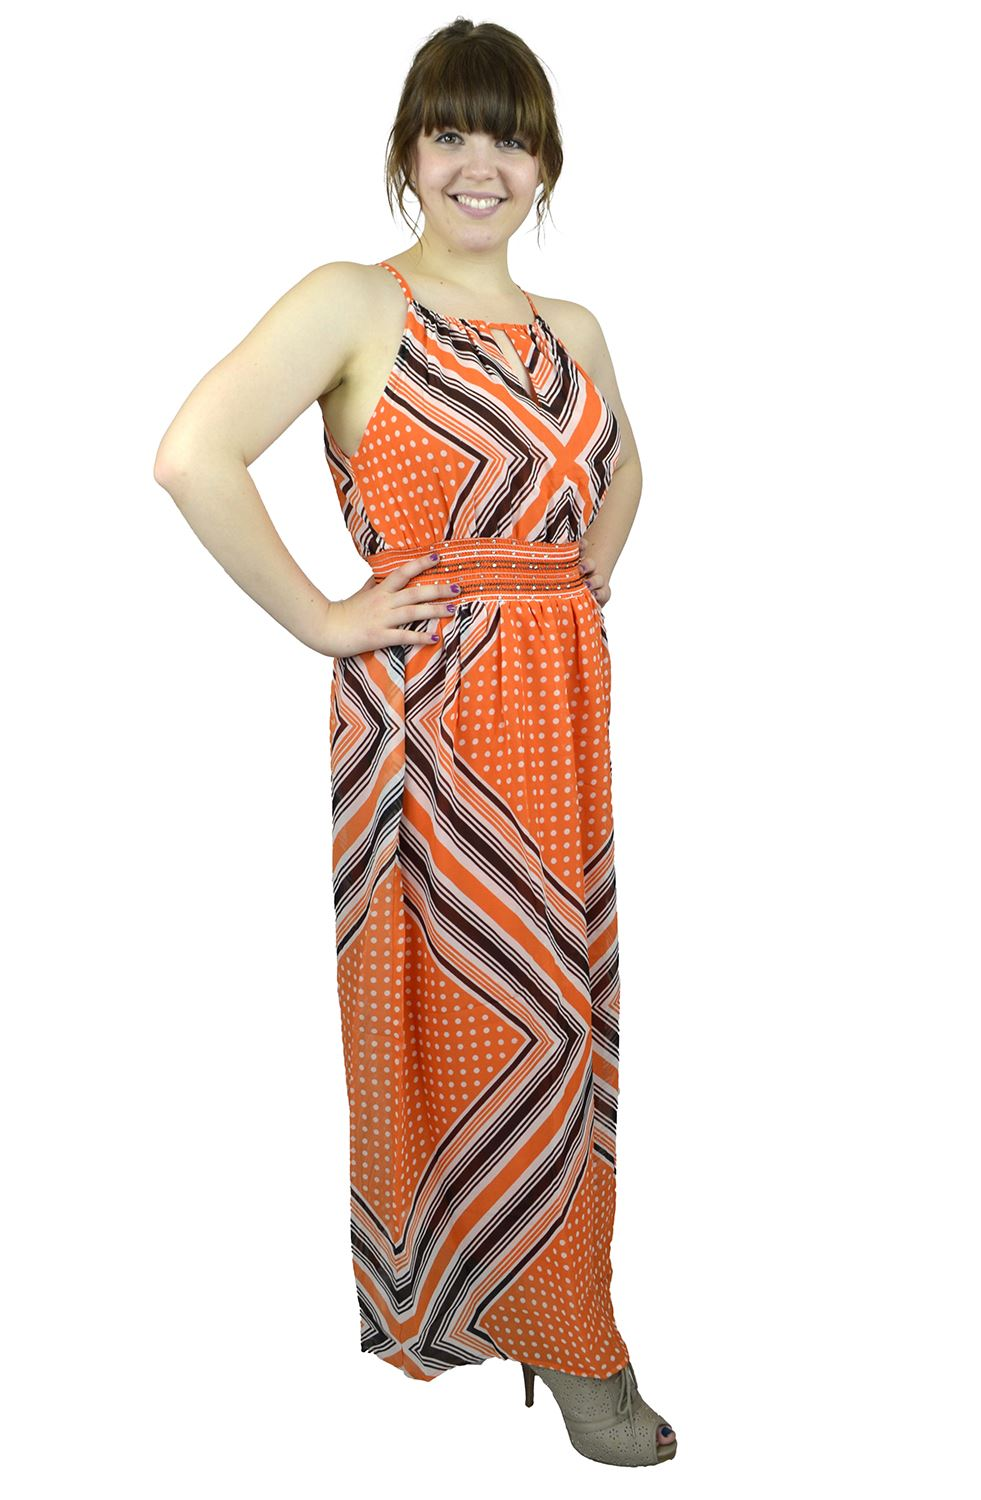 Belle Donne Women's Plus Size Print Maxi Dresses Cute Spring Fashion Sundress -Orange/XX-Large